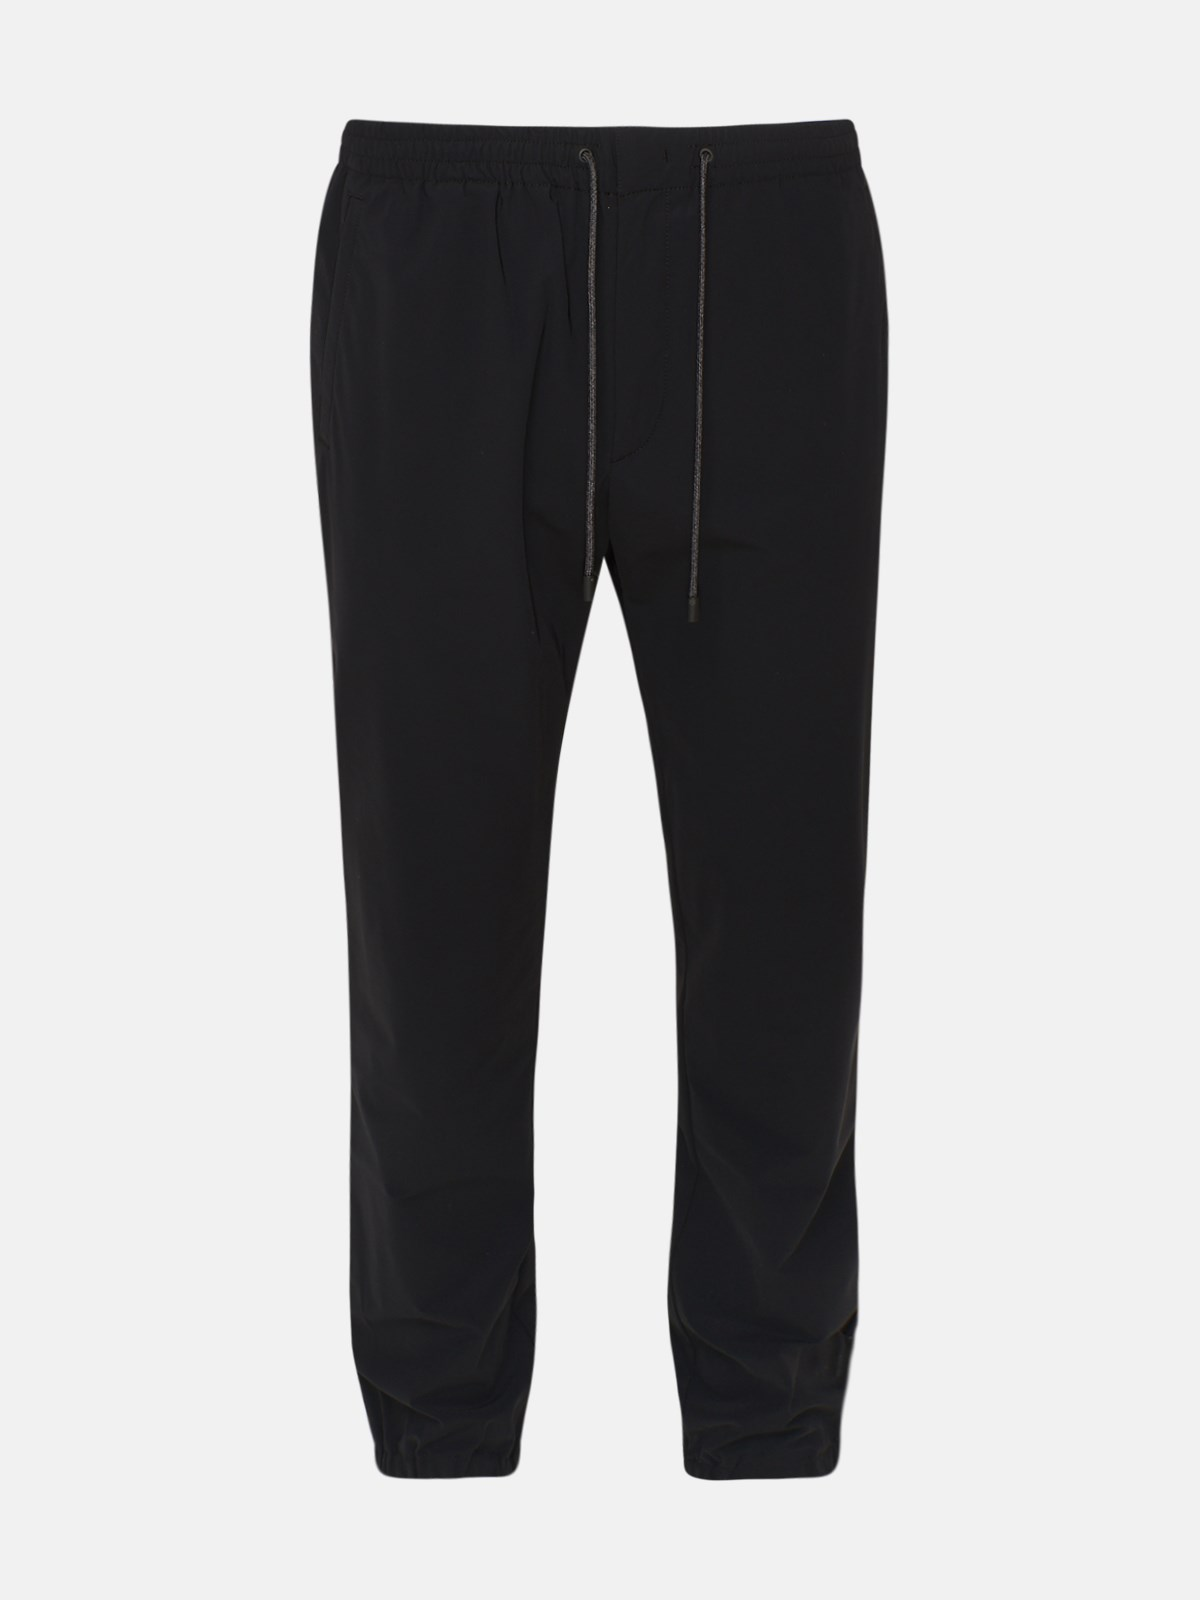 Z Zegna BLACK PANTS